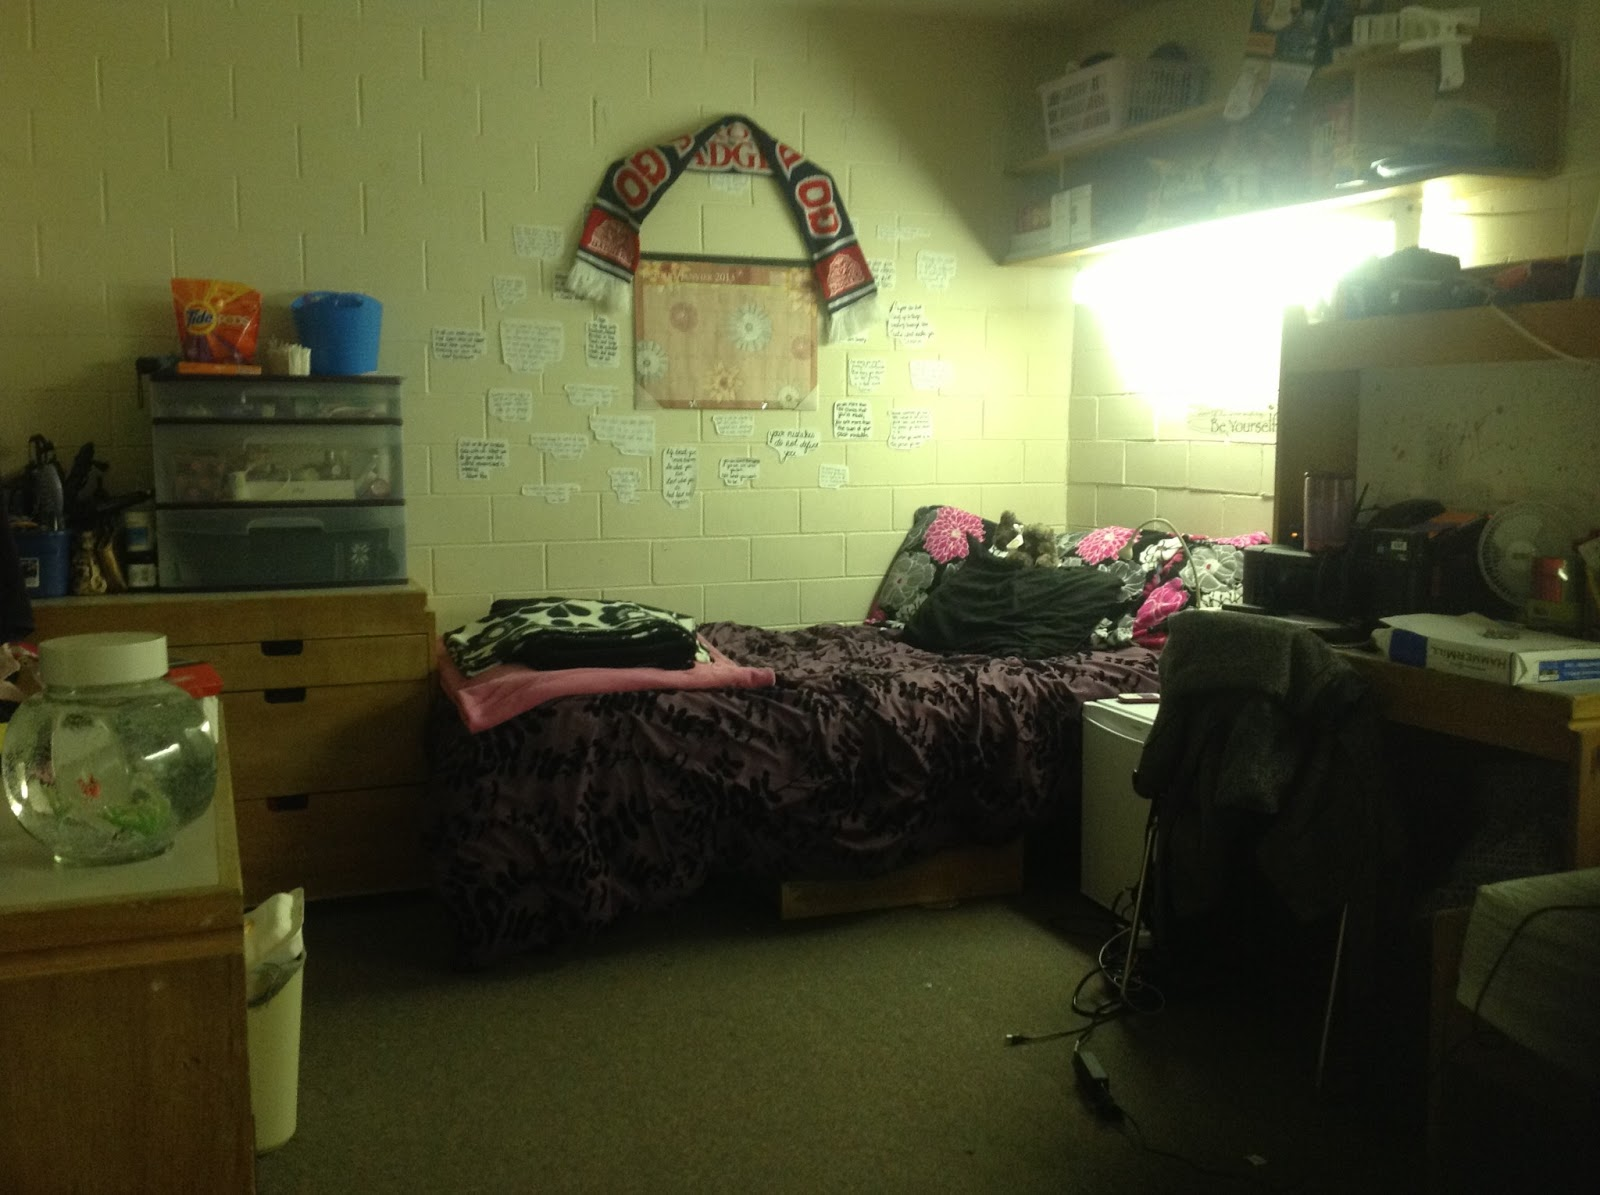 Dancing through university decorating your dorm room on a - How to decorate a dorm room ...